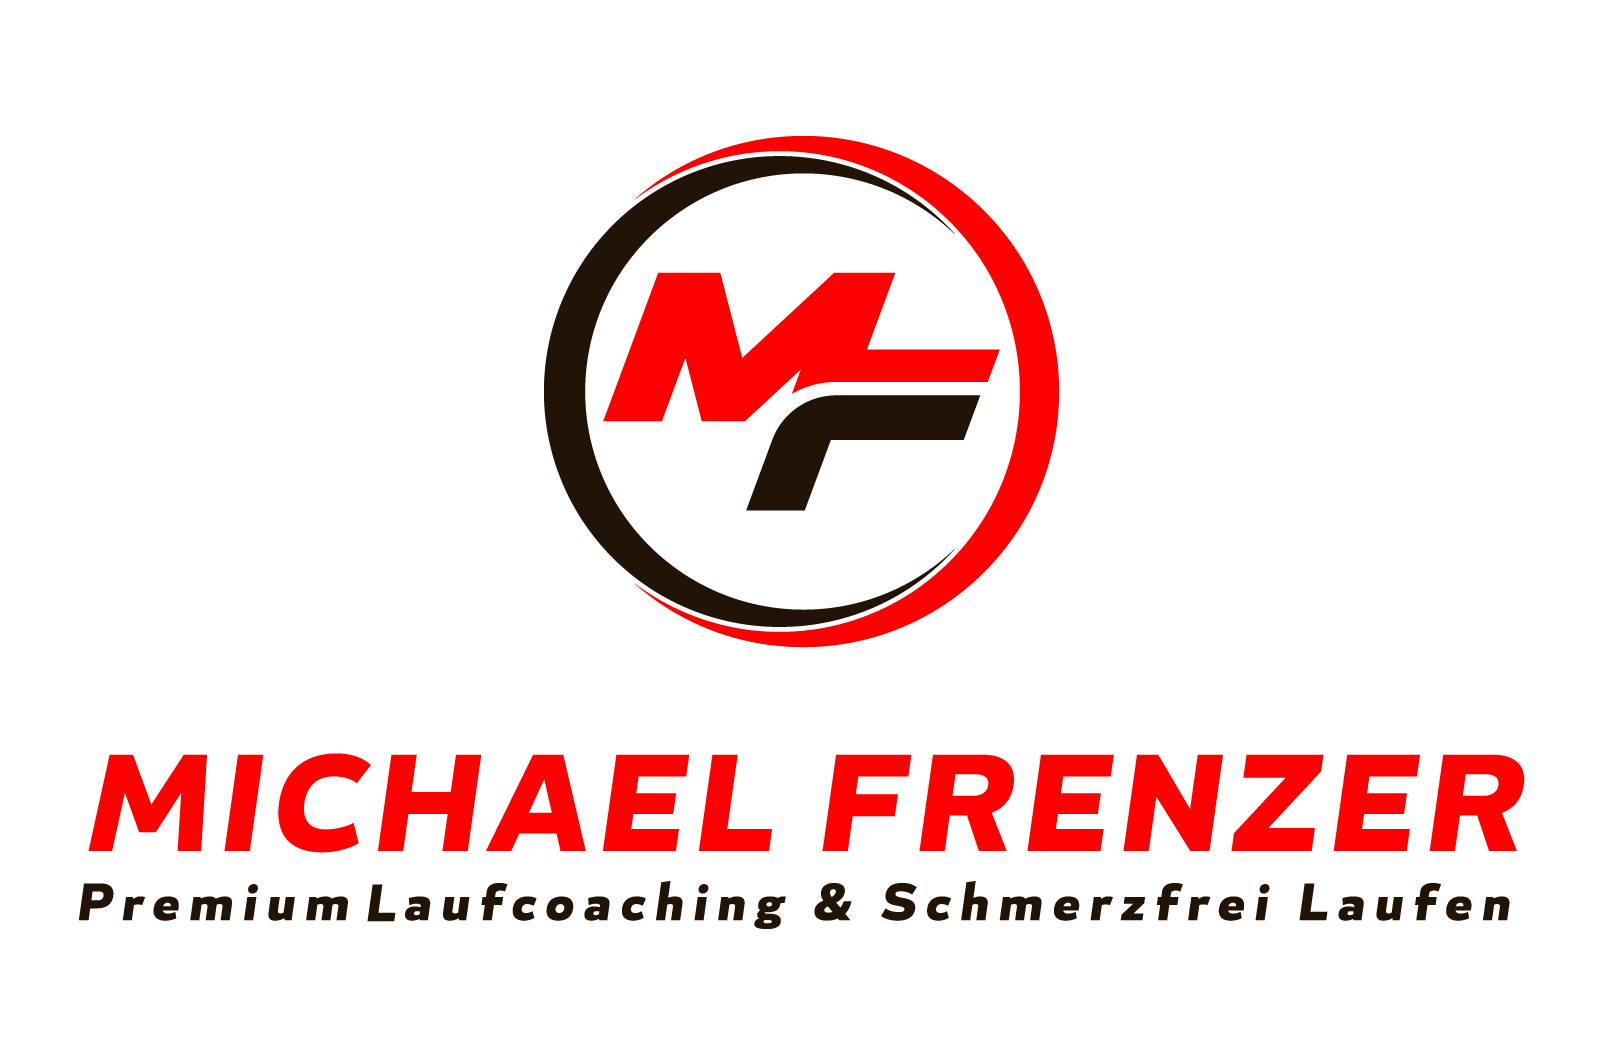 Michael Frenzer